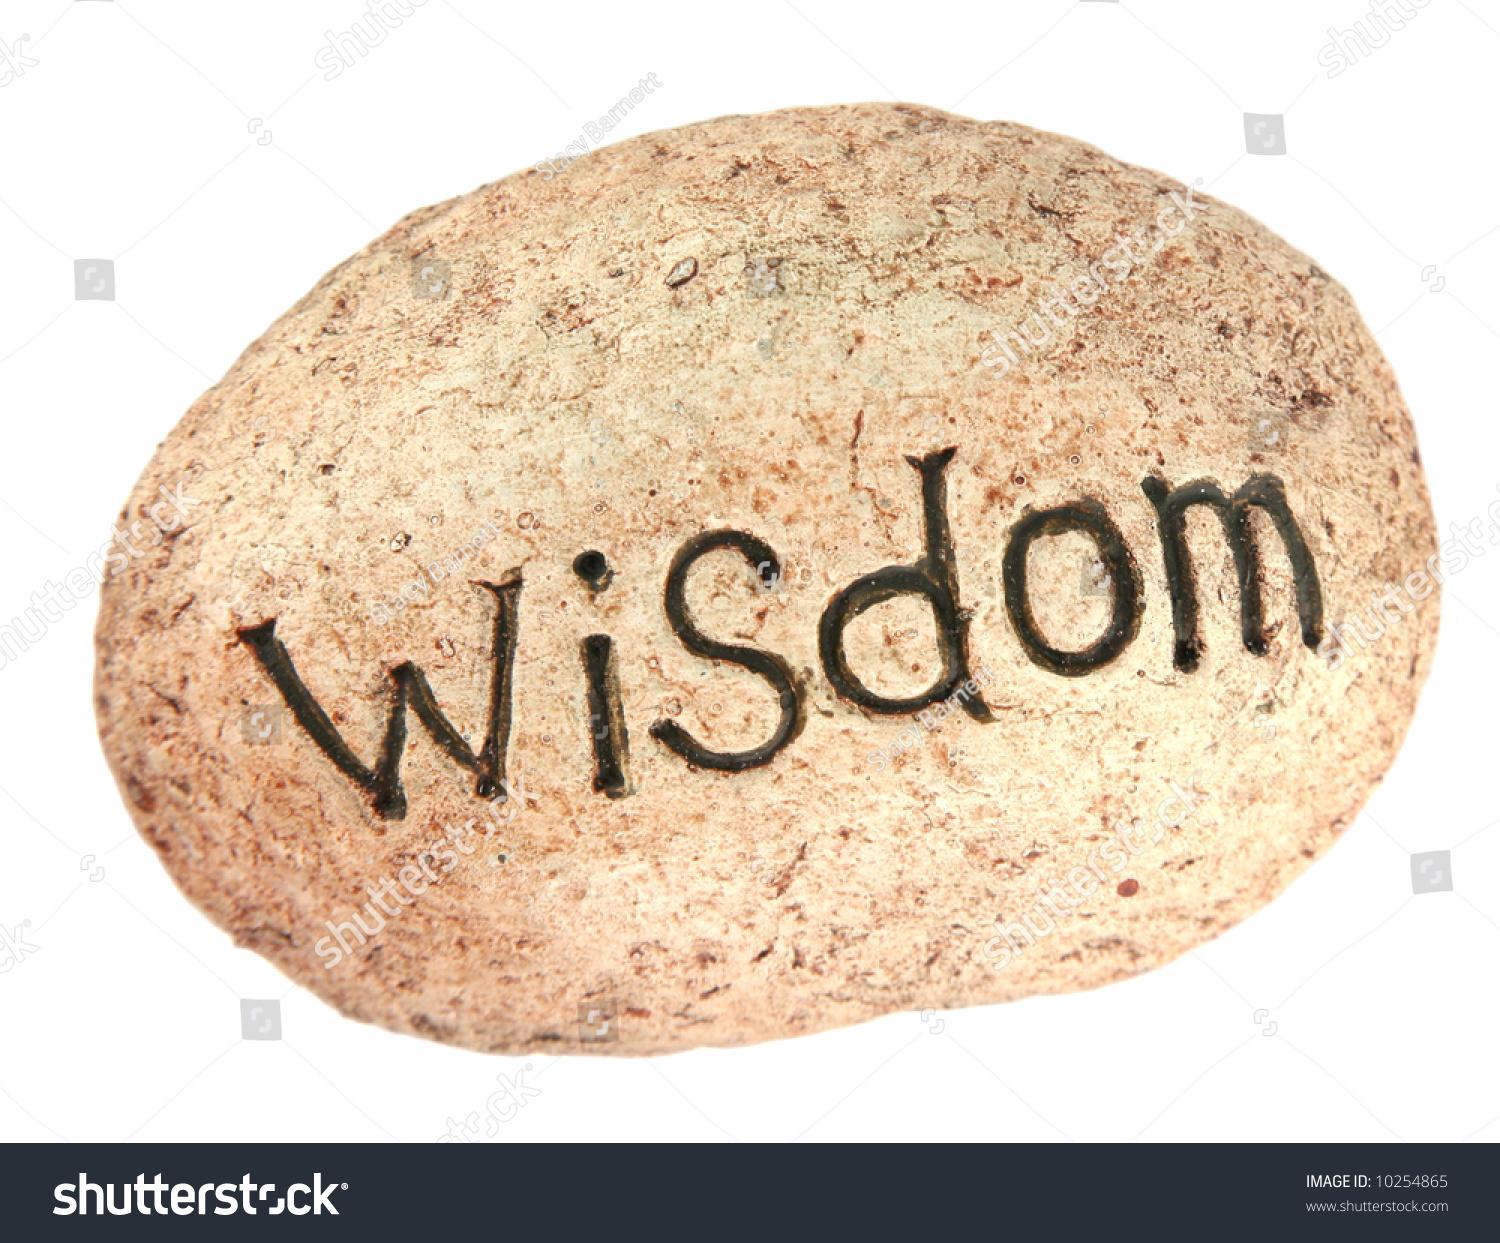 The Word Wisdom Written On A Rock For A Garden Stock Photo ...